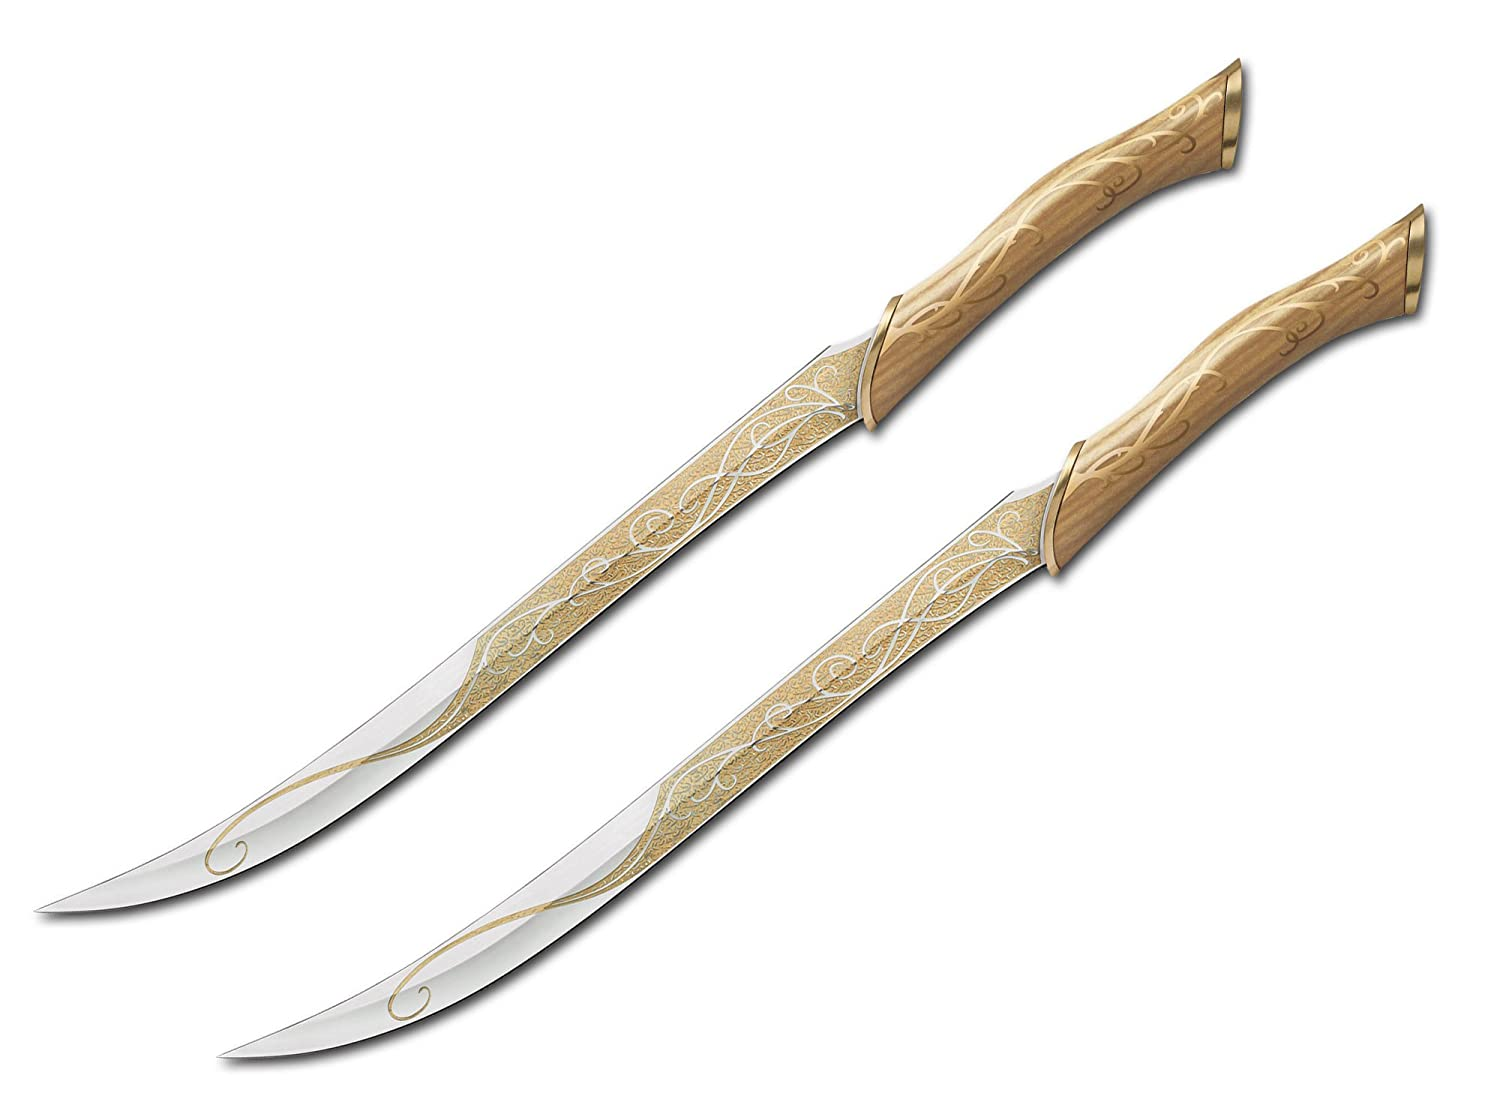 Böker Tasche und Küchenmesser Klinge United Cutlery The Hobbit-Legolas Dagger With Display Plaque, 05UC3001